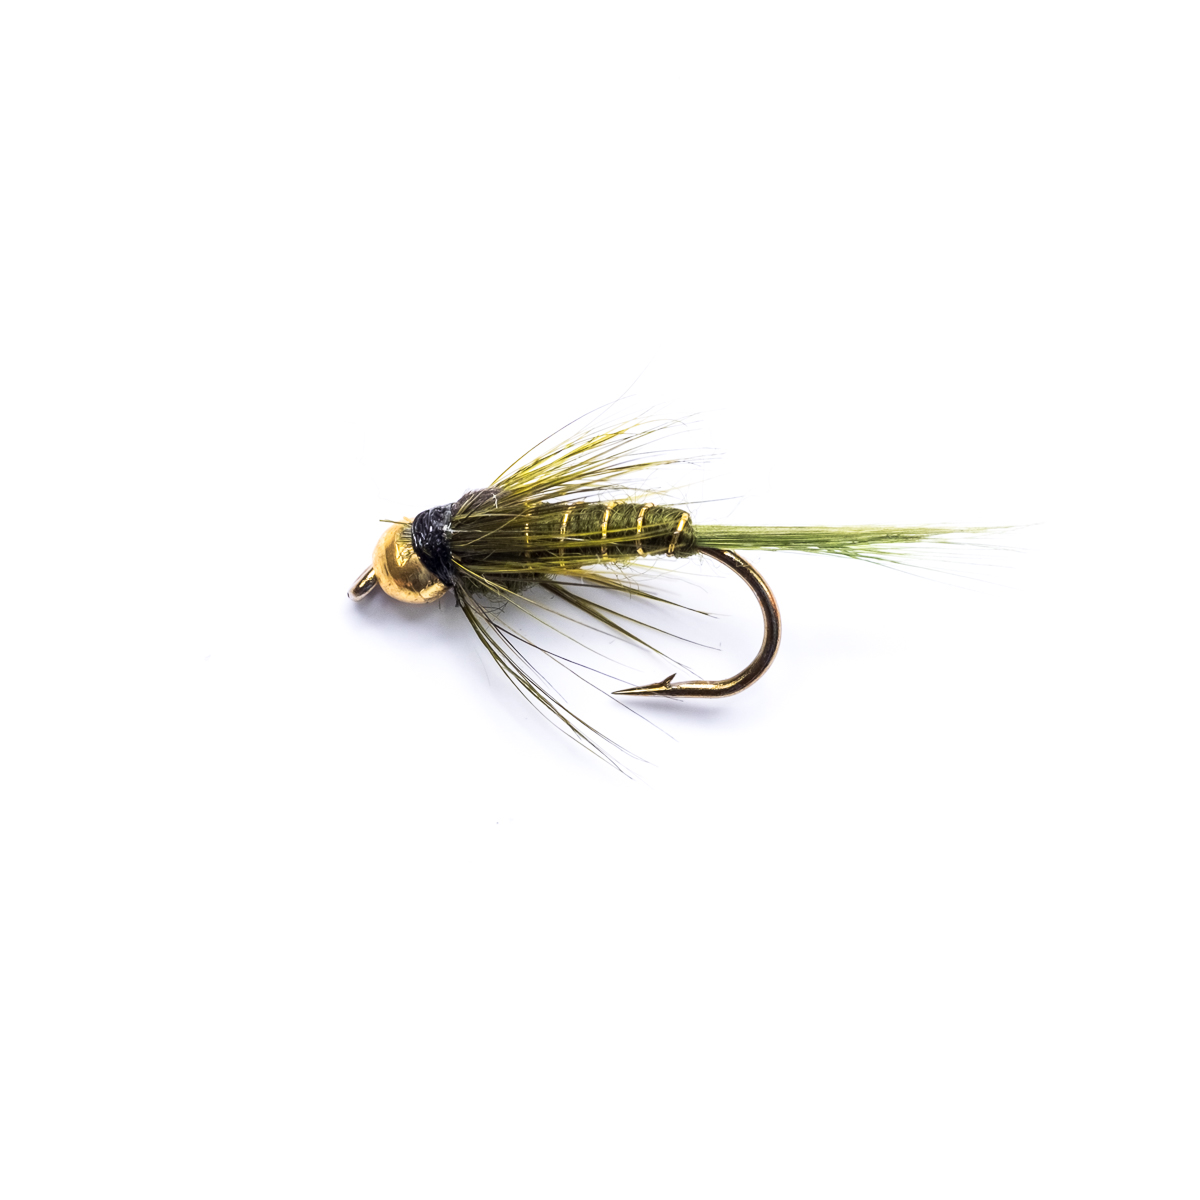 WALKERS MAYFLY GOLD HEAD NYMPH Trout /& Grayling Fly fishing flies  Dragonflies